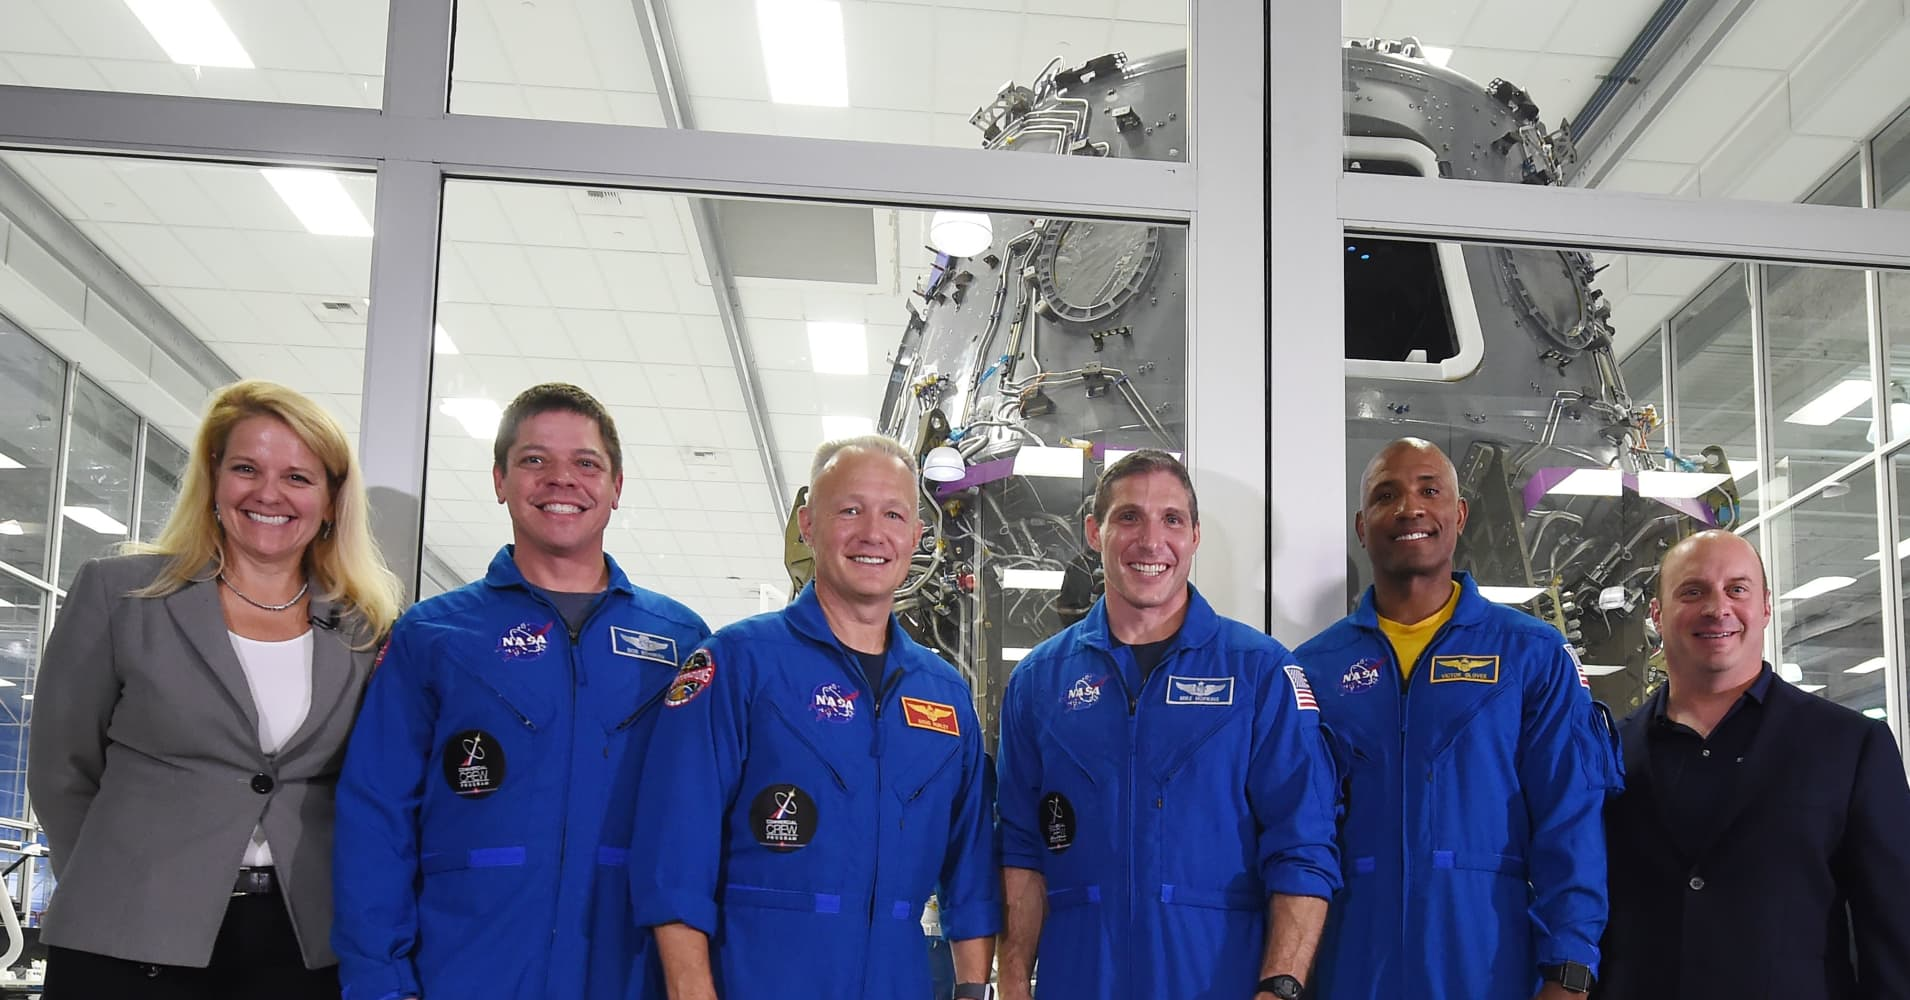 Step inside SpaceX's Crew Dragon capsule, launching the next generation of US spaceflight